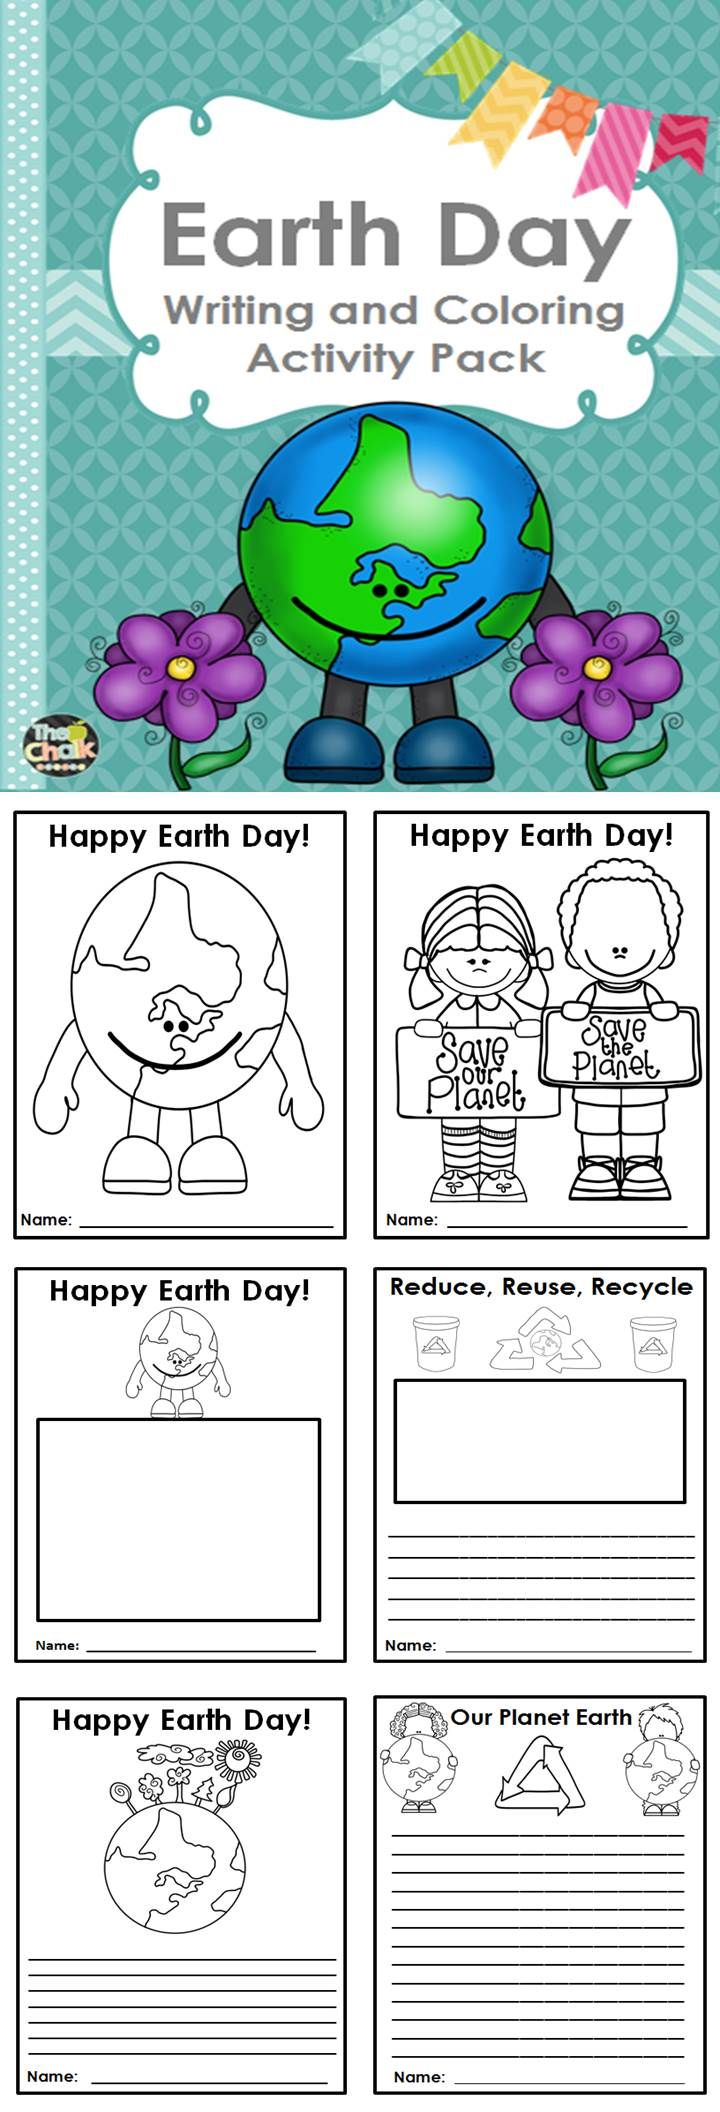 Earth day mandala coloring pages - Celebrate Earth Day With These Adorable Writing Templates And Coloring Pages These Activities Are A